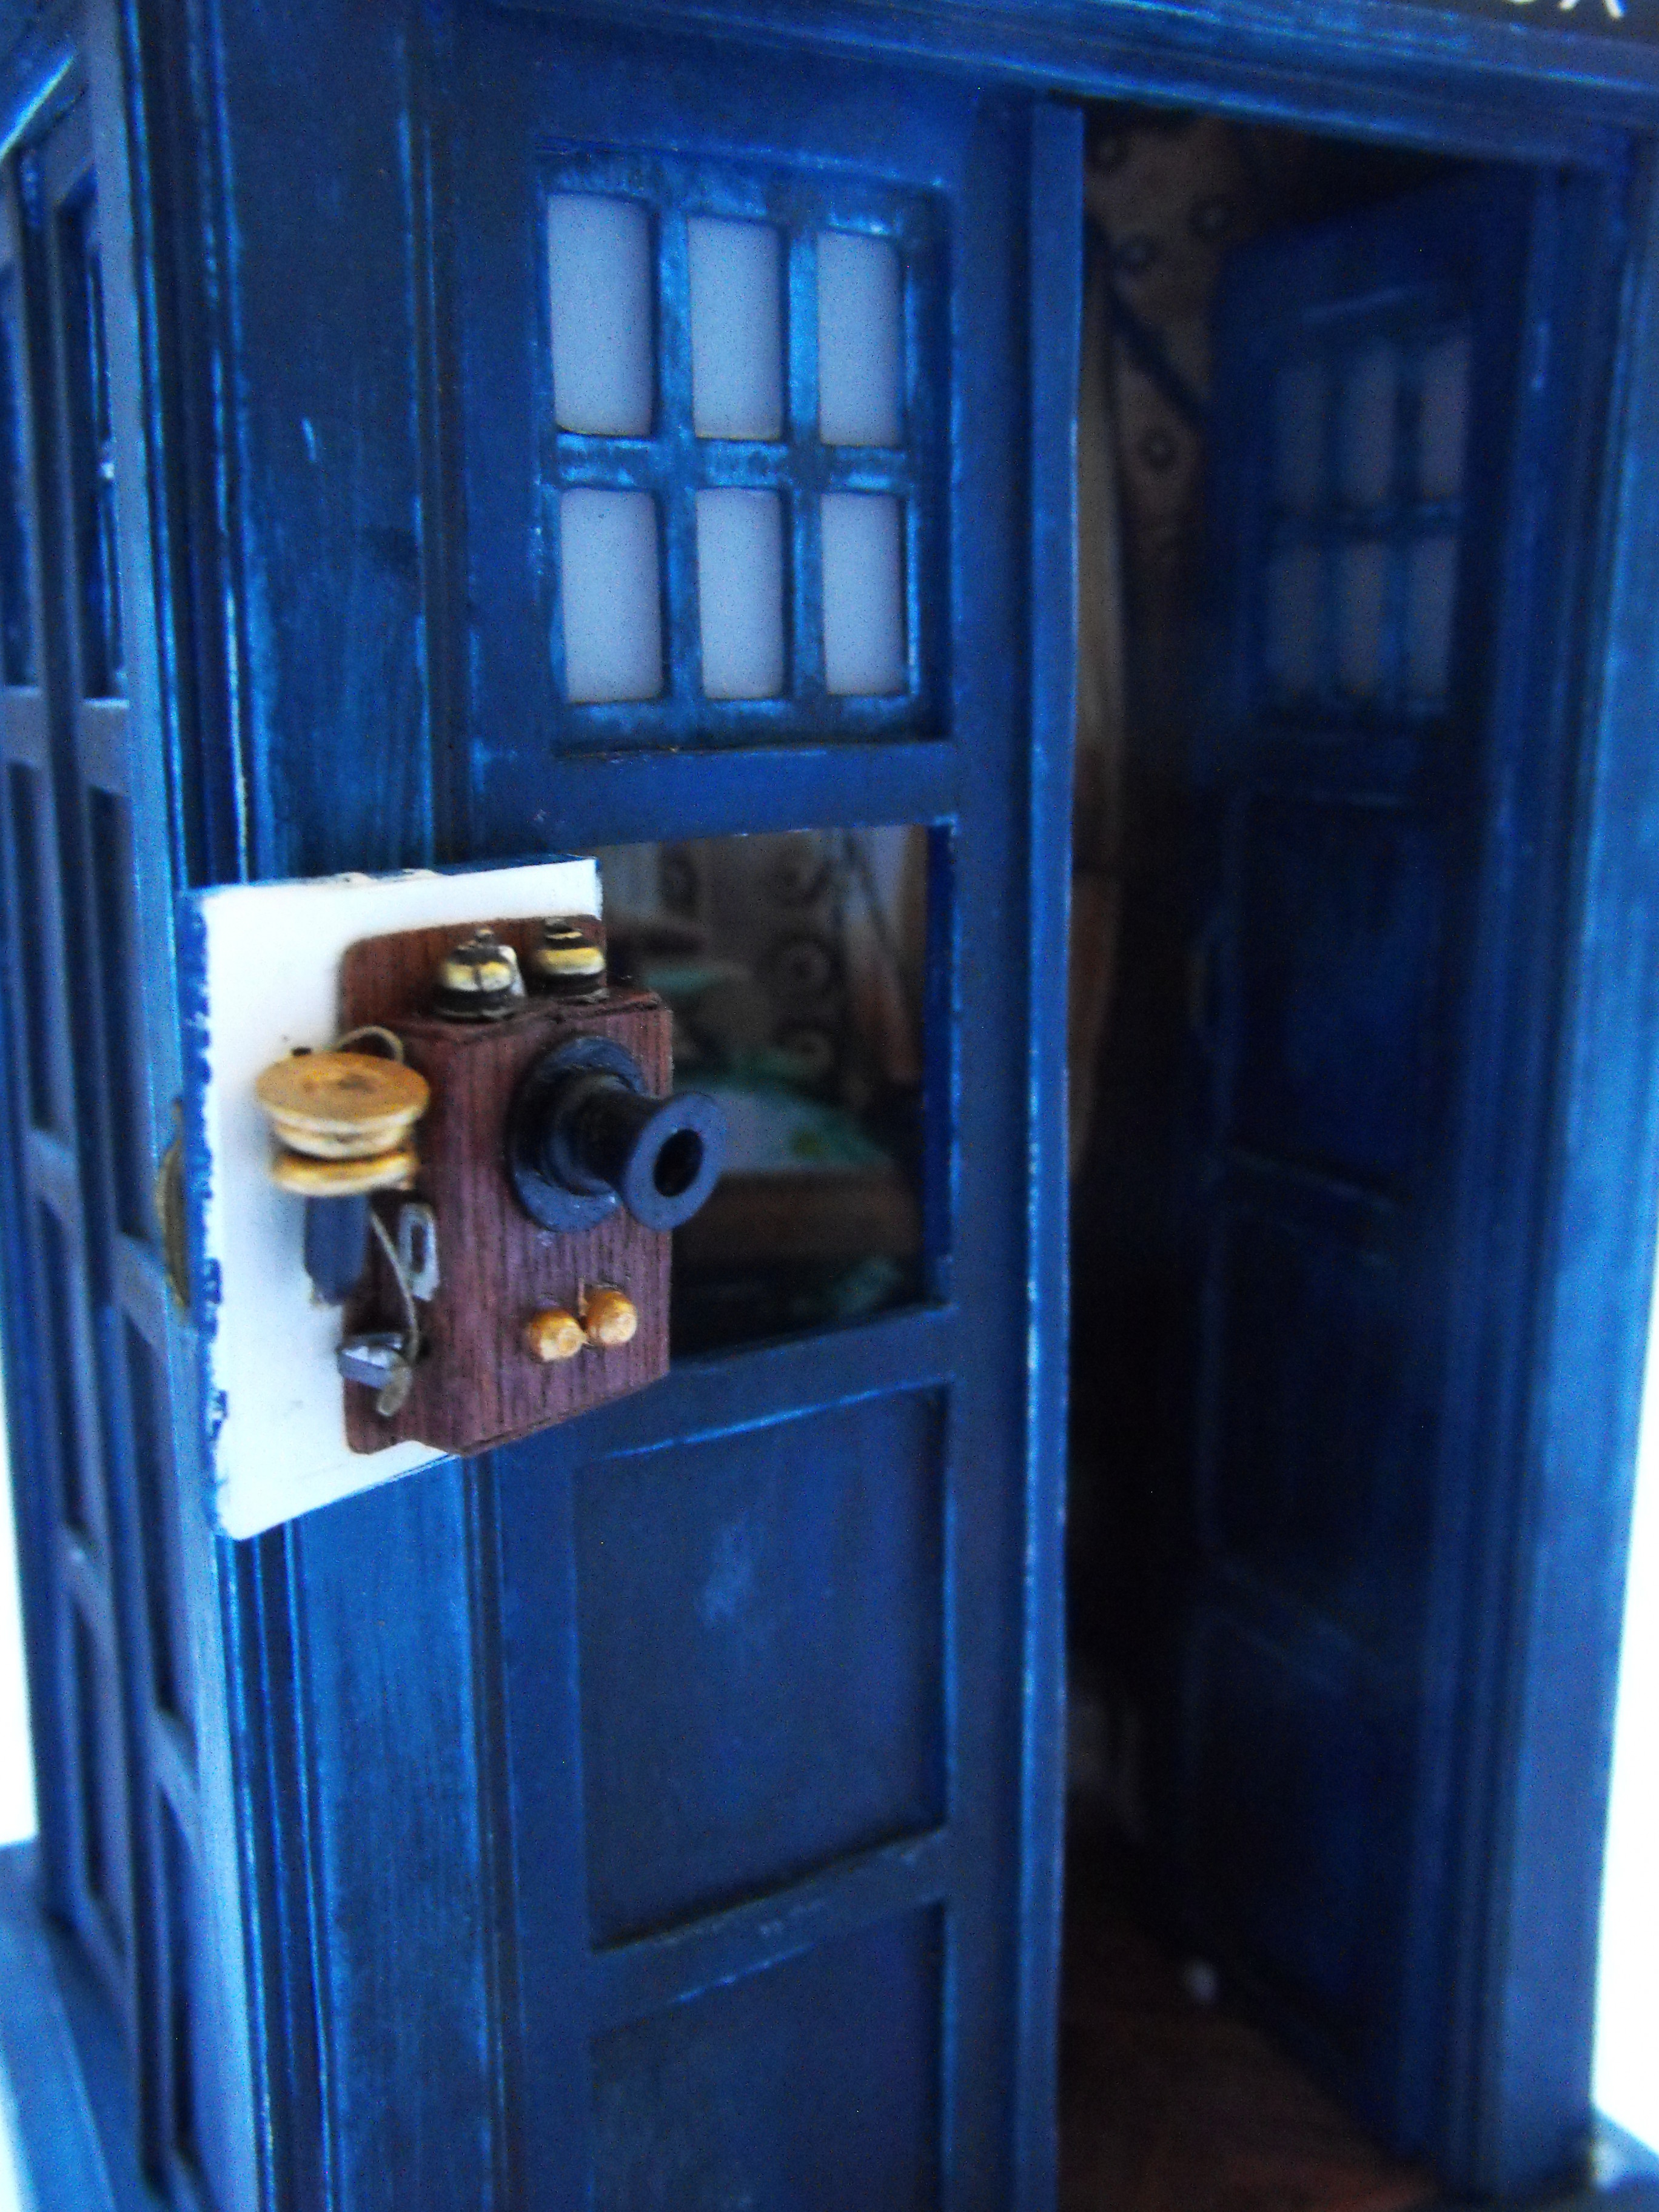 10th Doctor TARDIS Model (2011 Build) by theDoctorWHO2 on DeviantArt